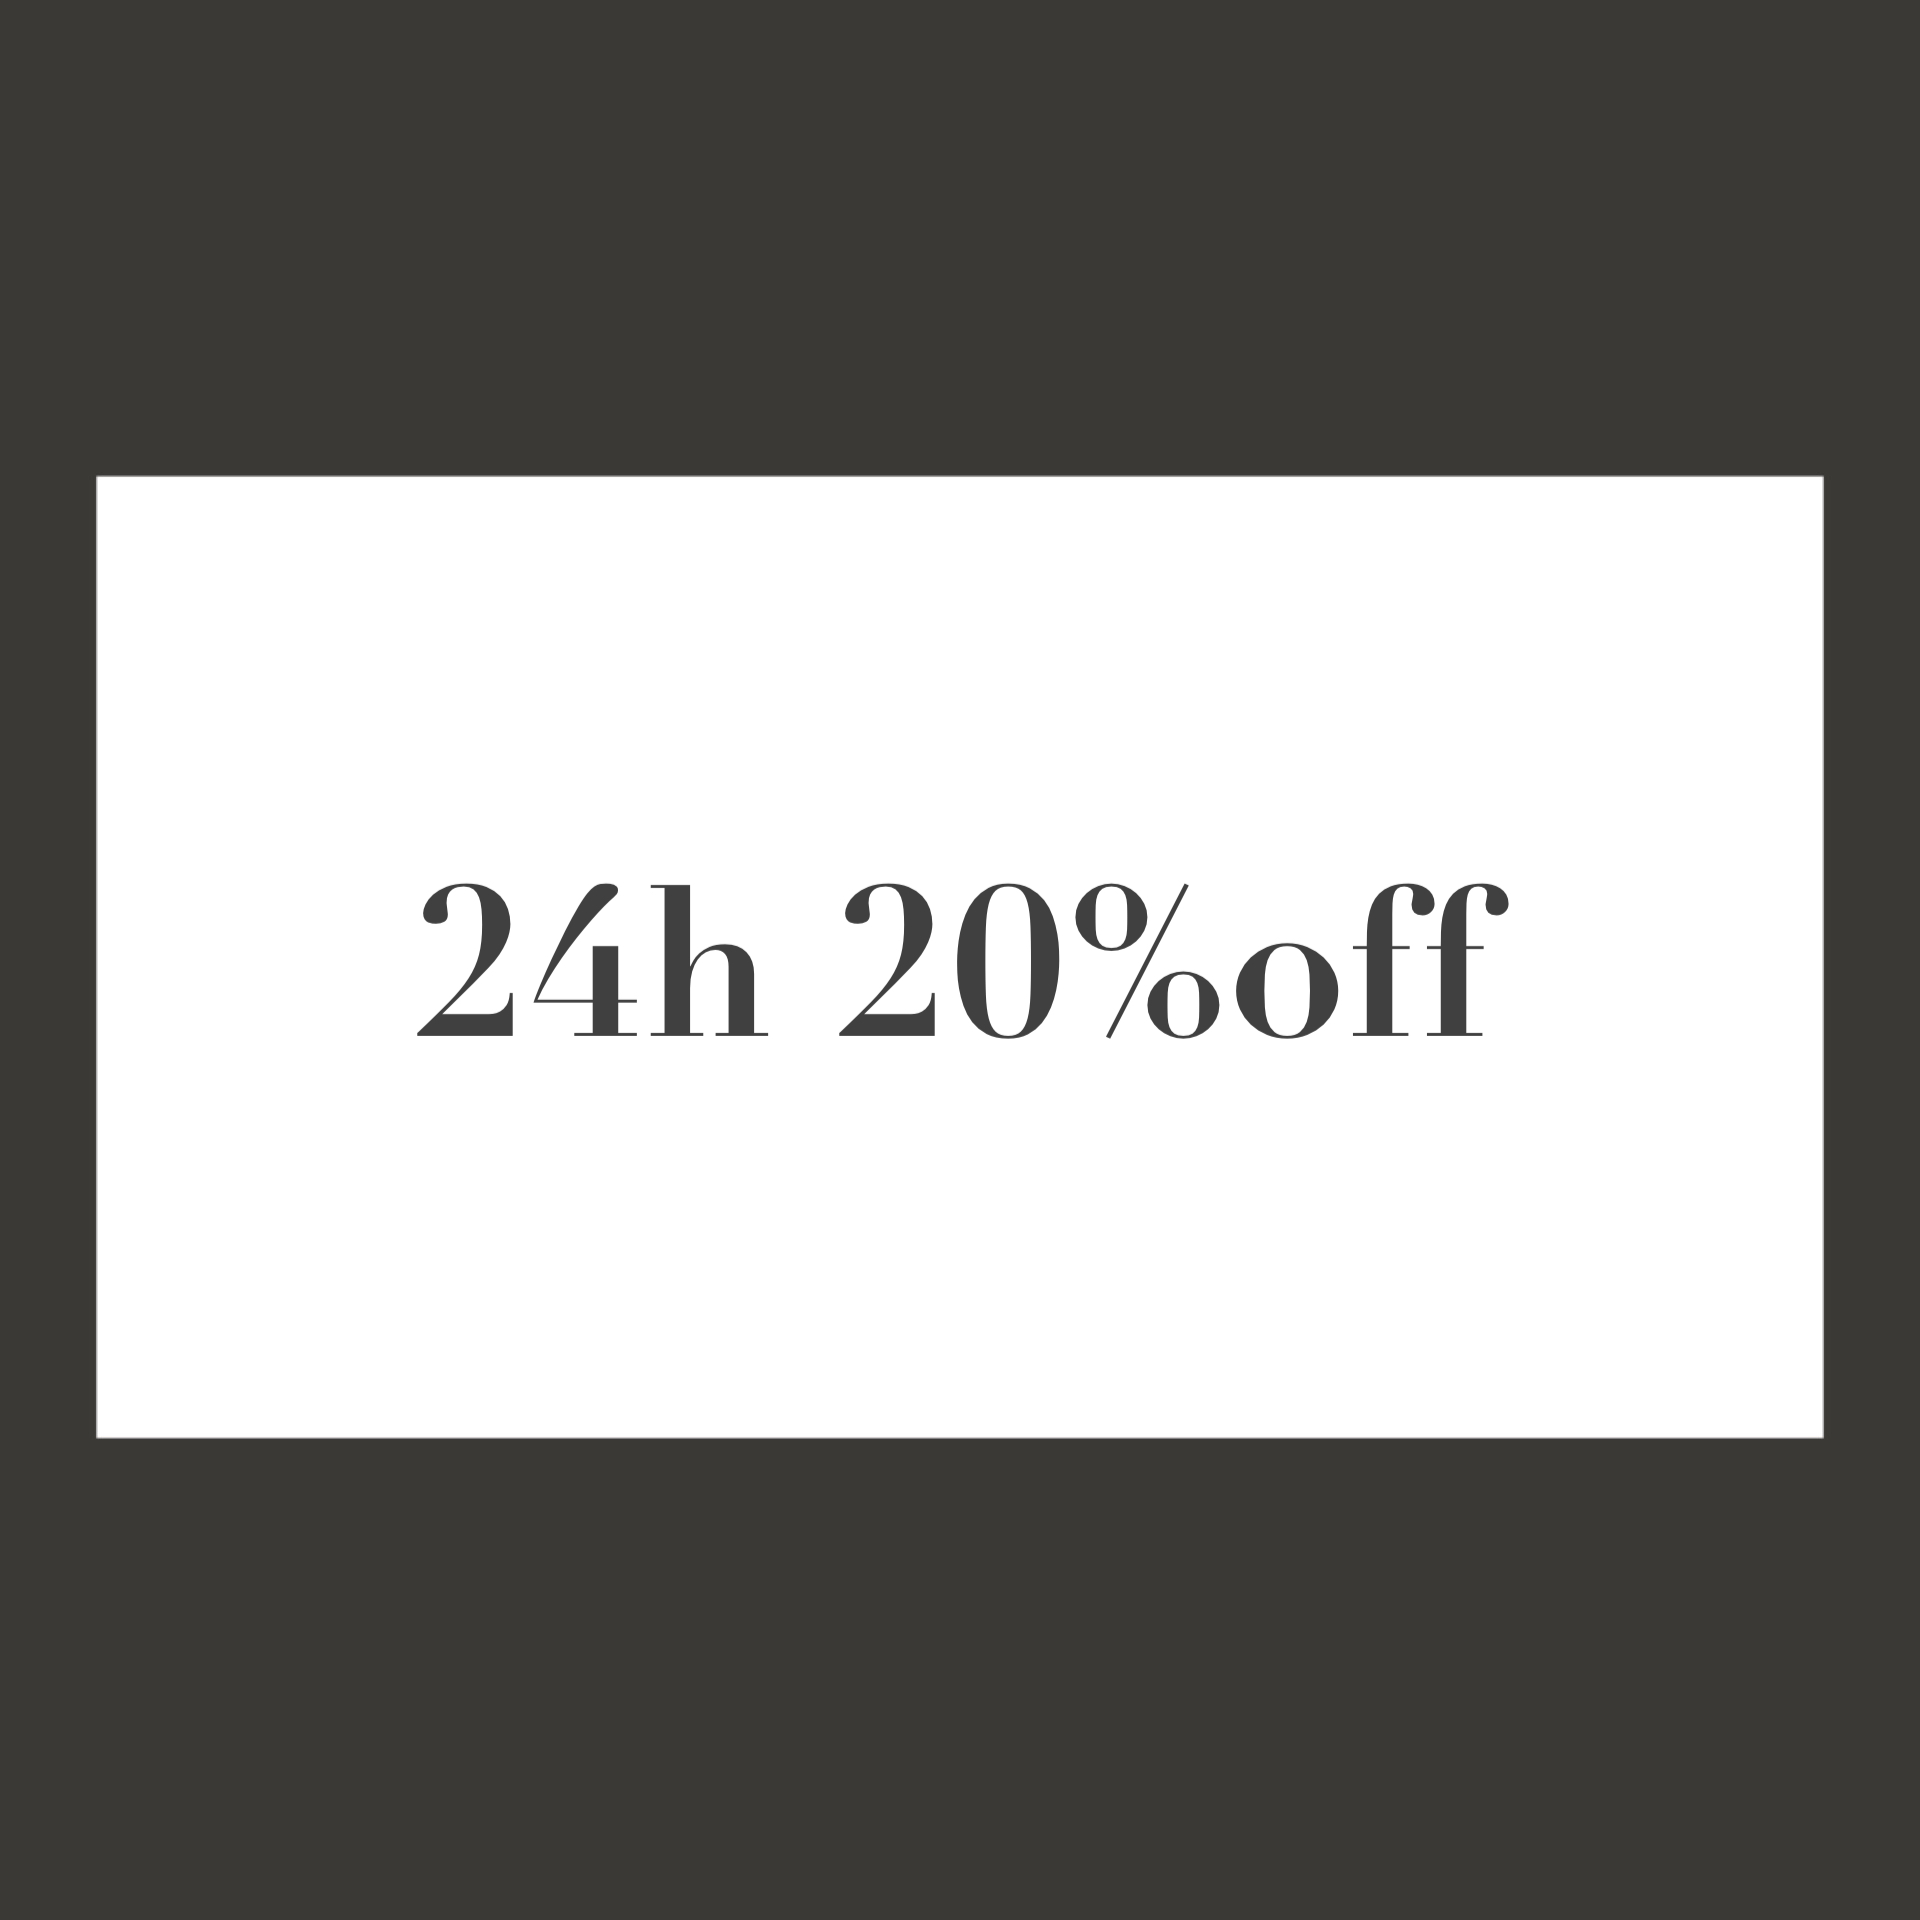 24h limited 20%off